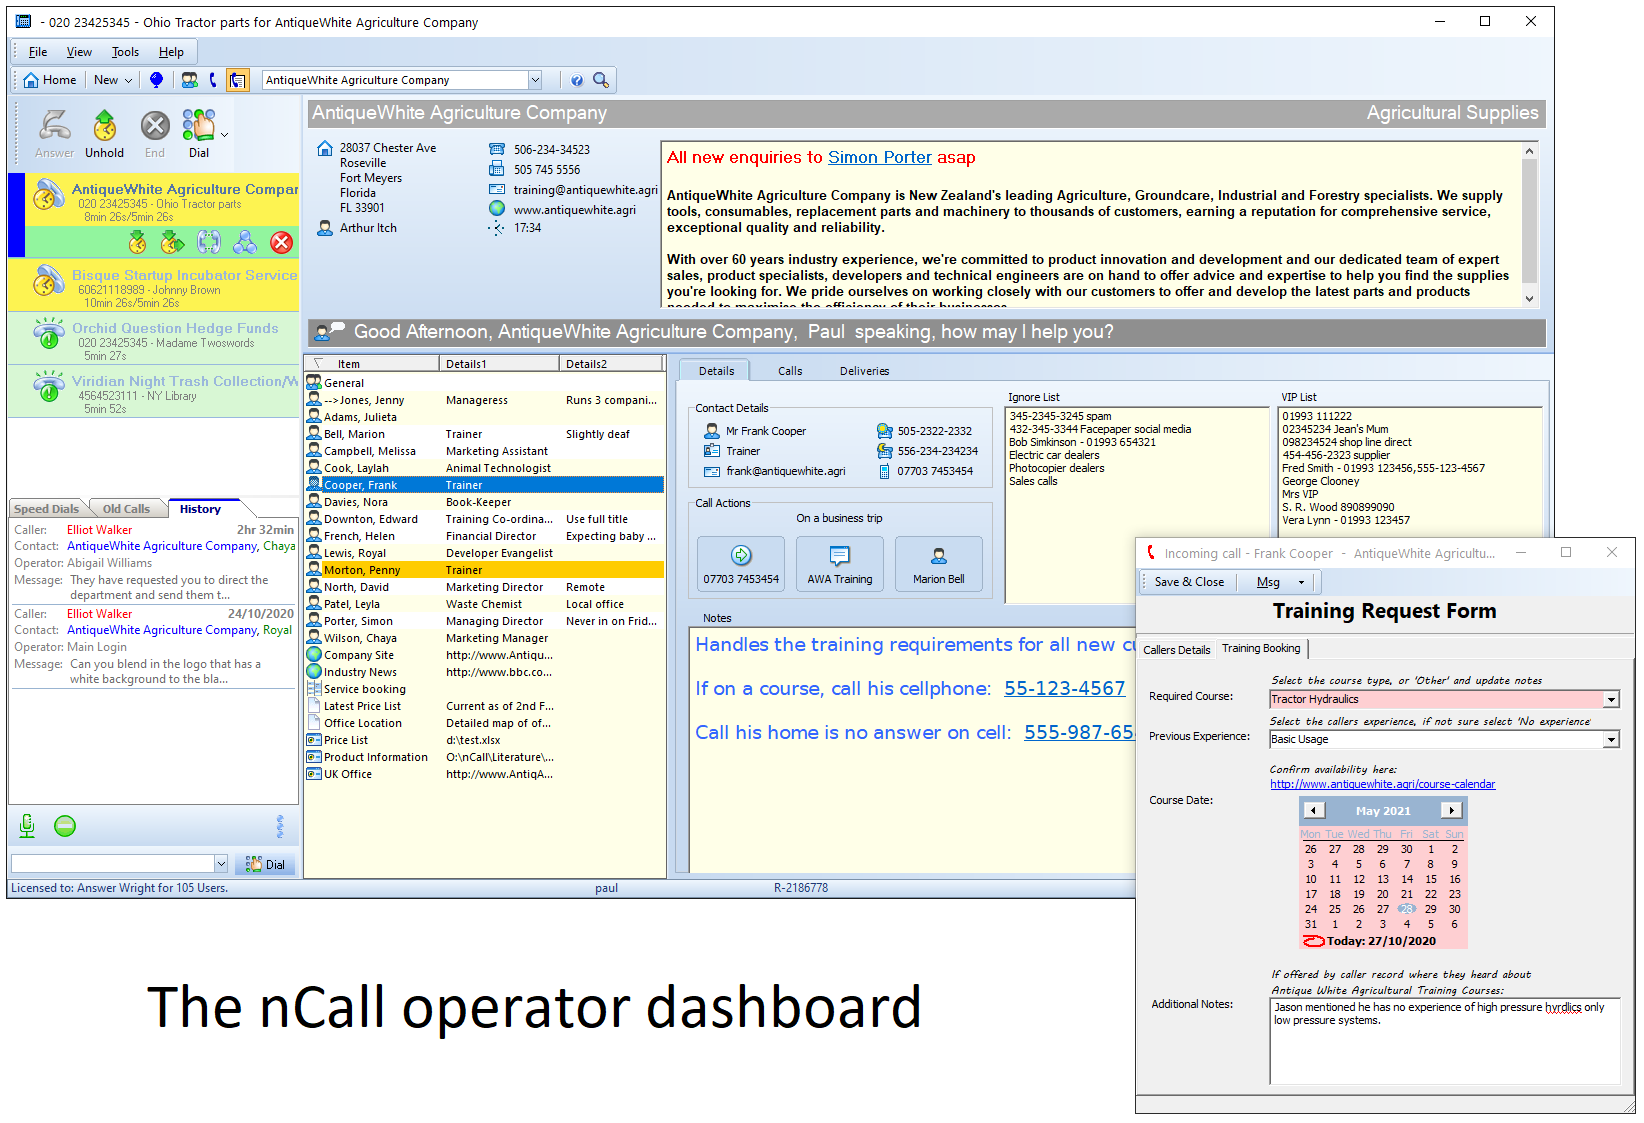 nCall screenshot